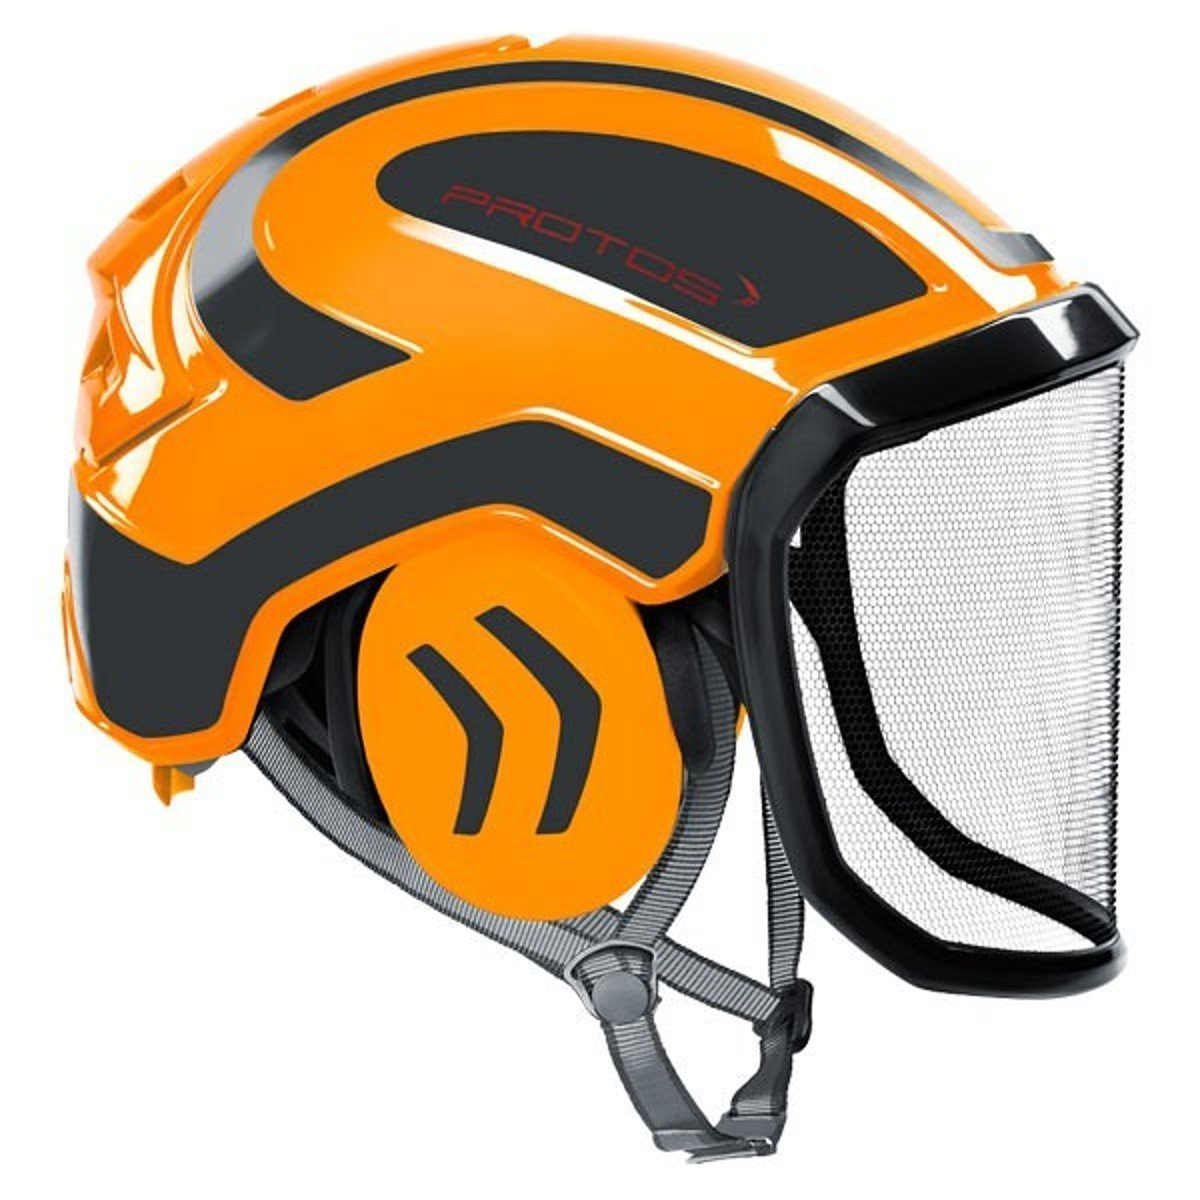 couleur:orange//gris;Ausstattung:feines Visier Protos Integral Arborist casque